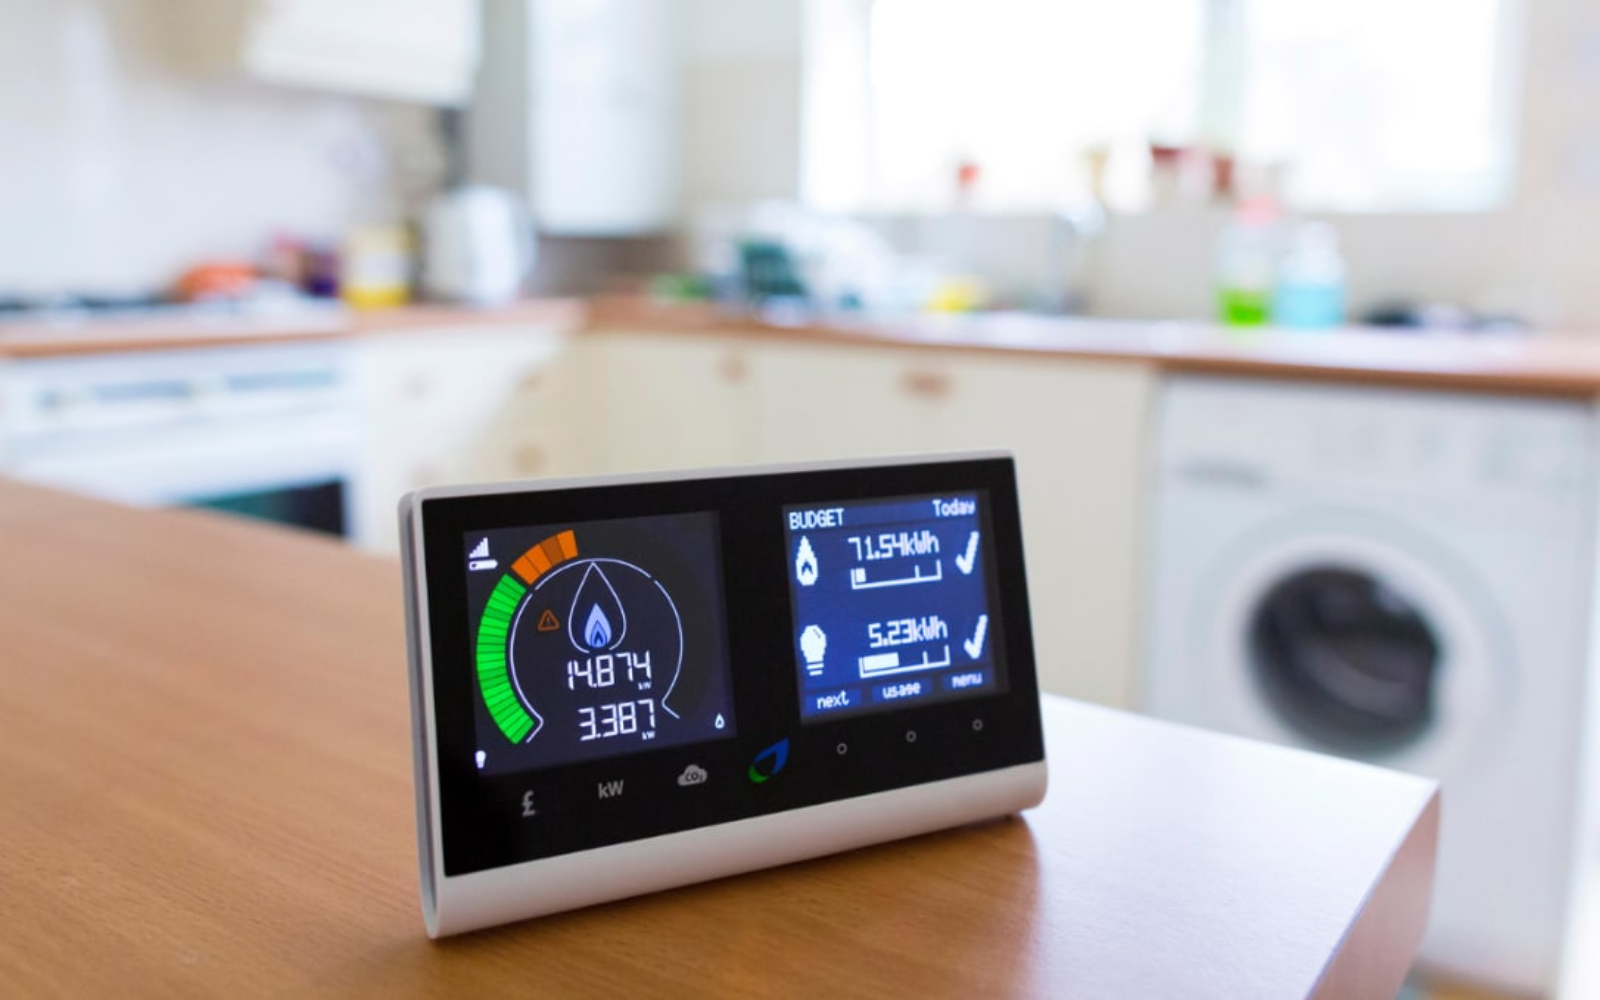 Smart Meter Market To Reflect Tremendous Growth Potential With A Staggering CAGR By 2031